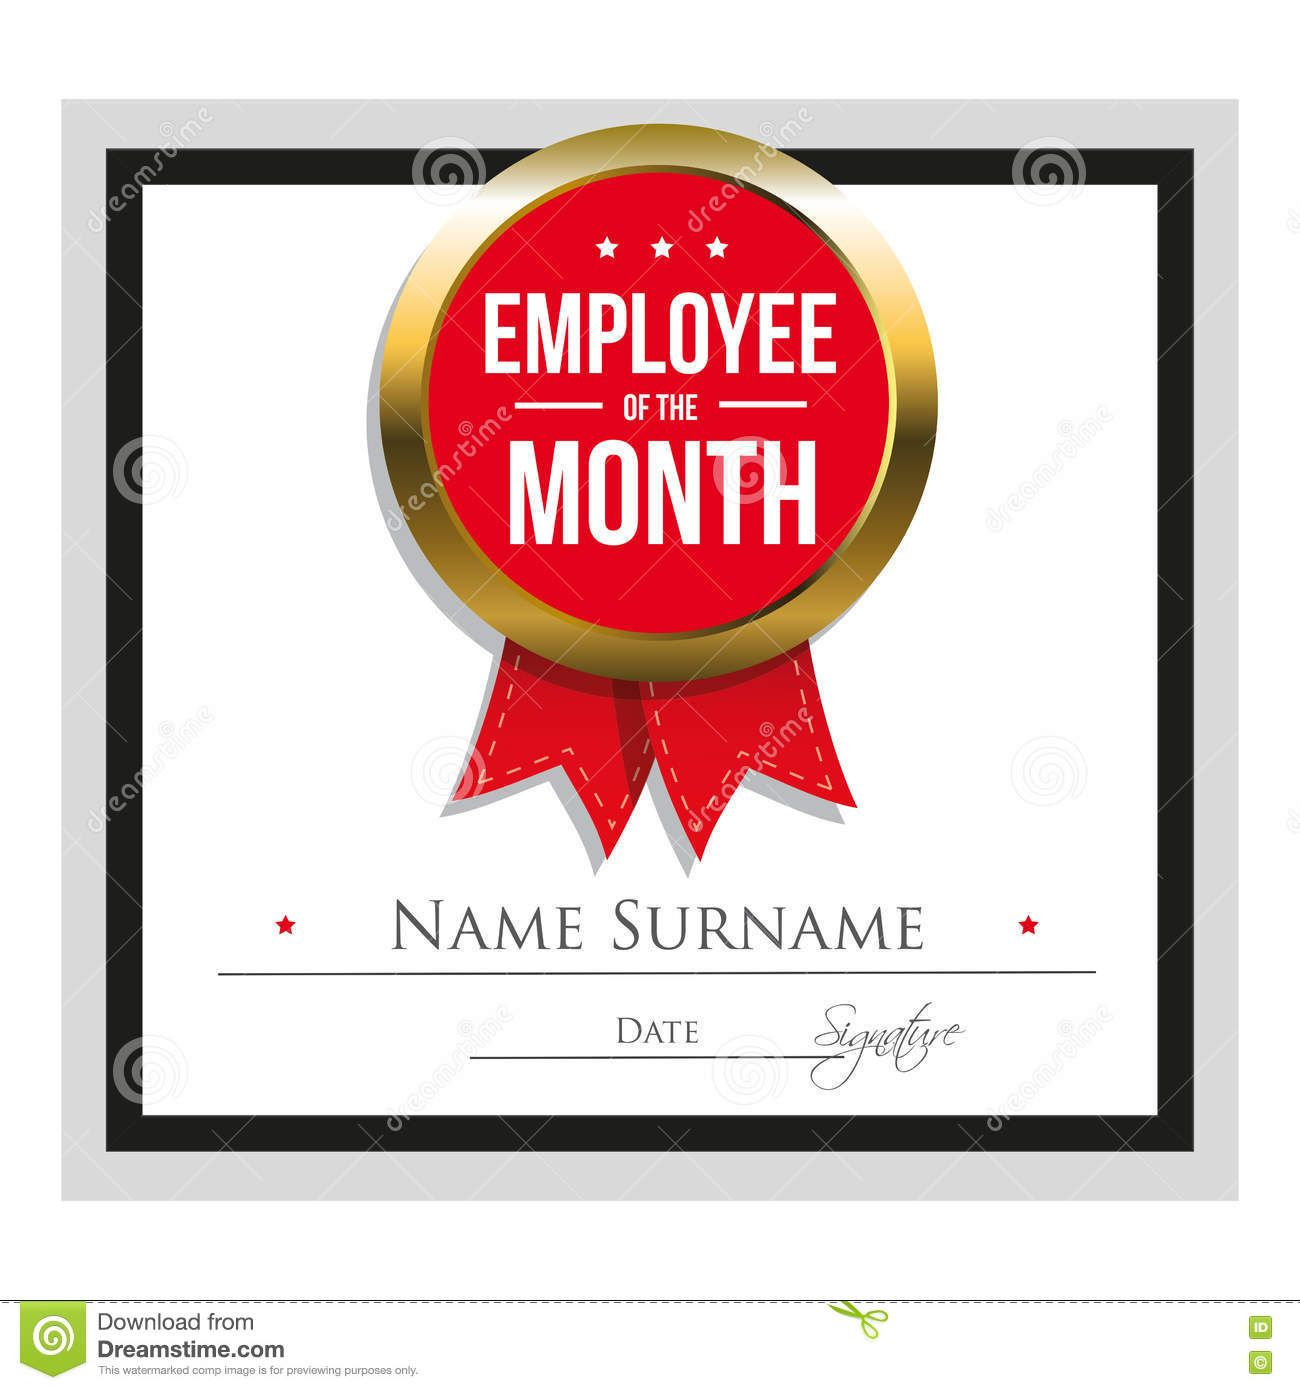 Employee award certificate template free templates design the employee award certificate template free templates design the month employee of the month certificate template stock 1betcityfo Image collections